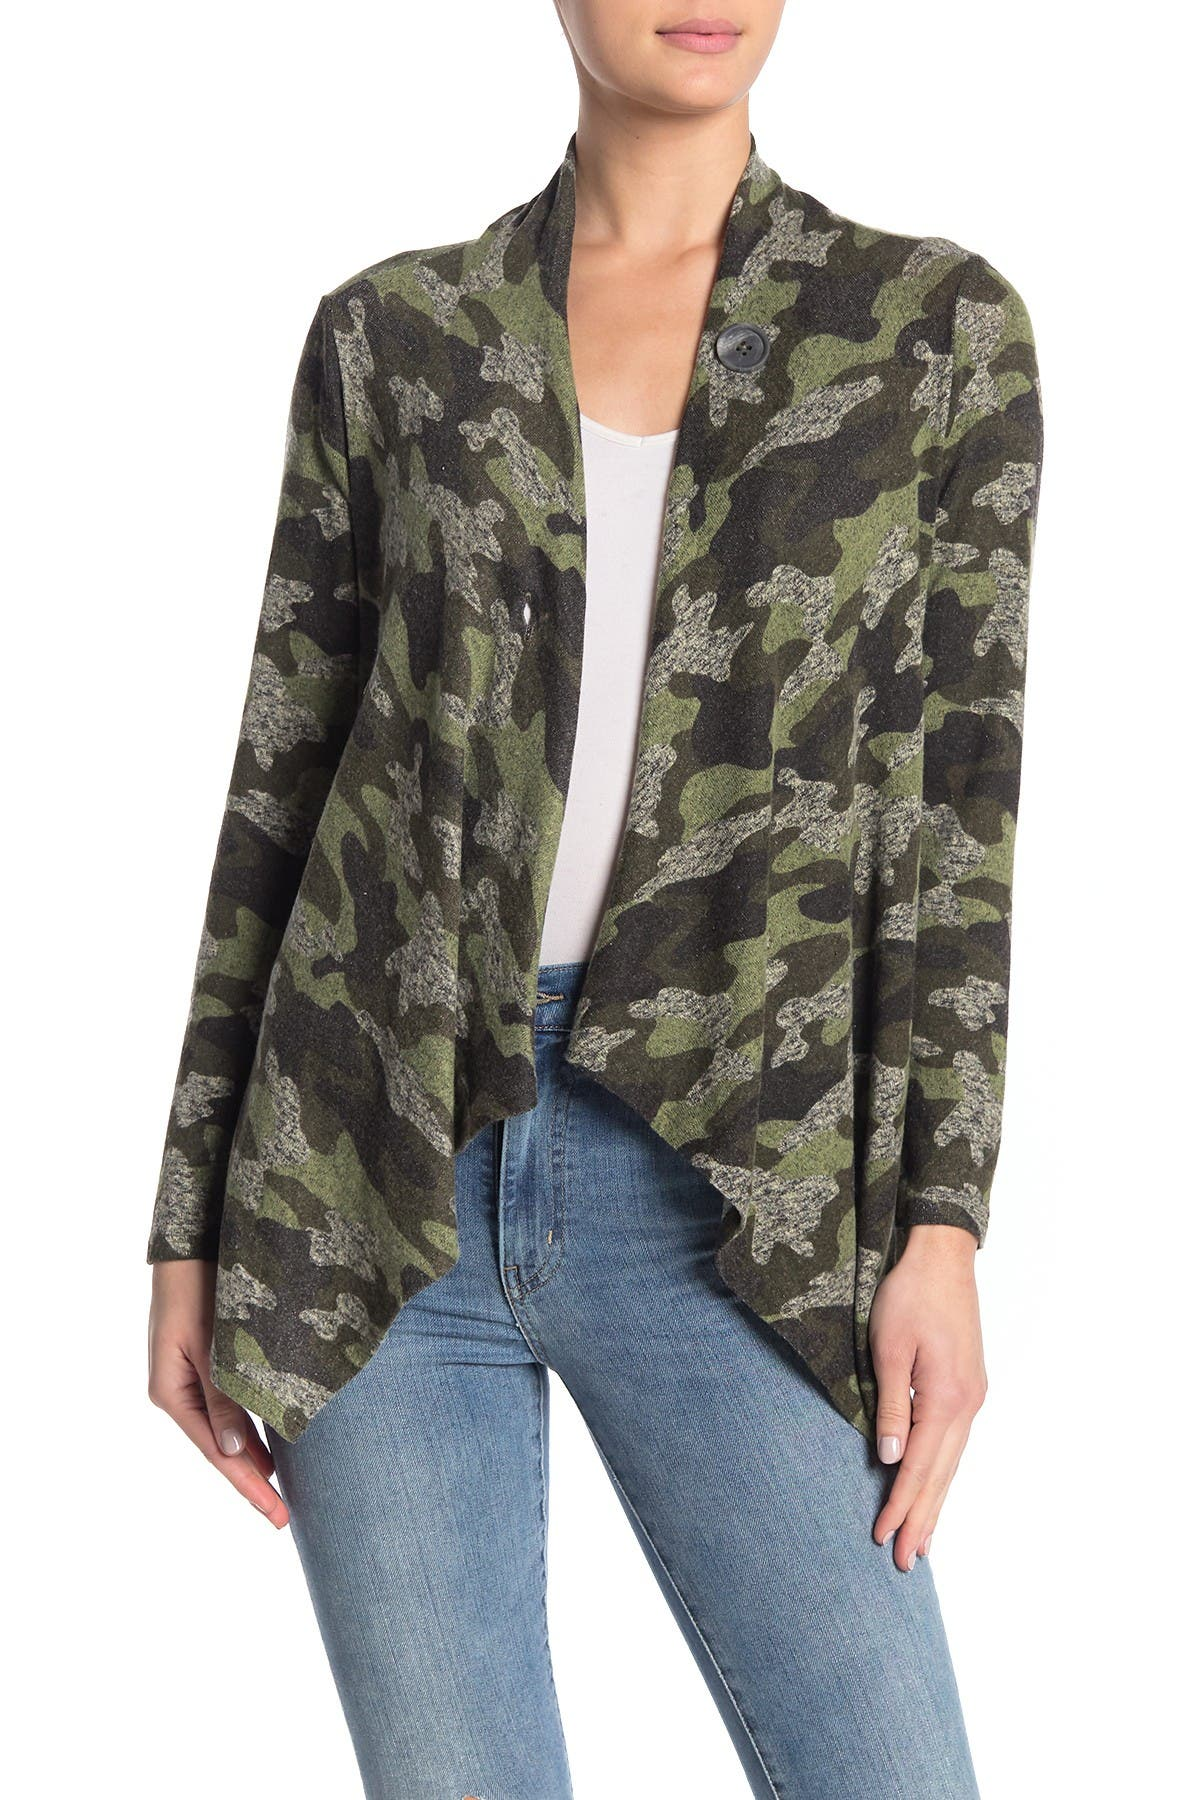 Image of Bobeau Camo Print One Button Cardigan